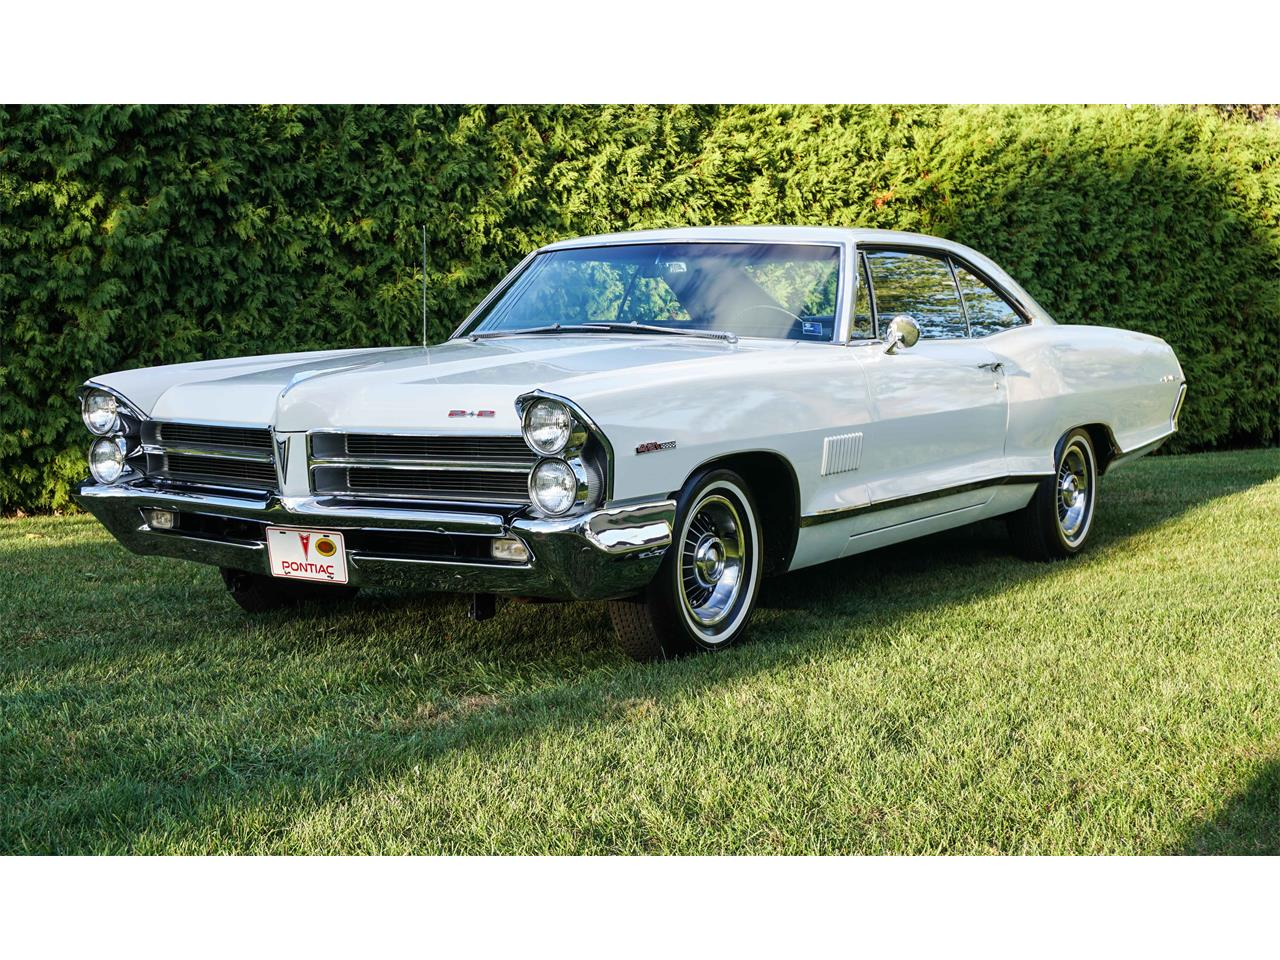 Large Picture of Classic '65 Pontiac Catalina located in Pennsylvania - $150,000.00 Offered by a Private Seller - O985